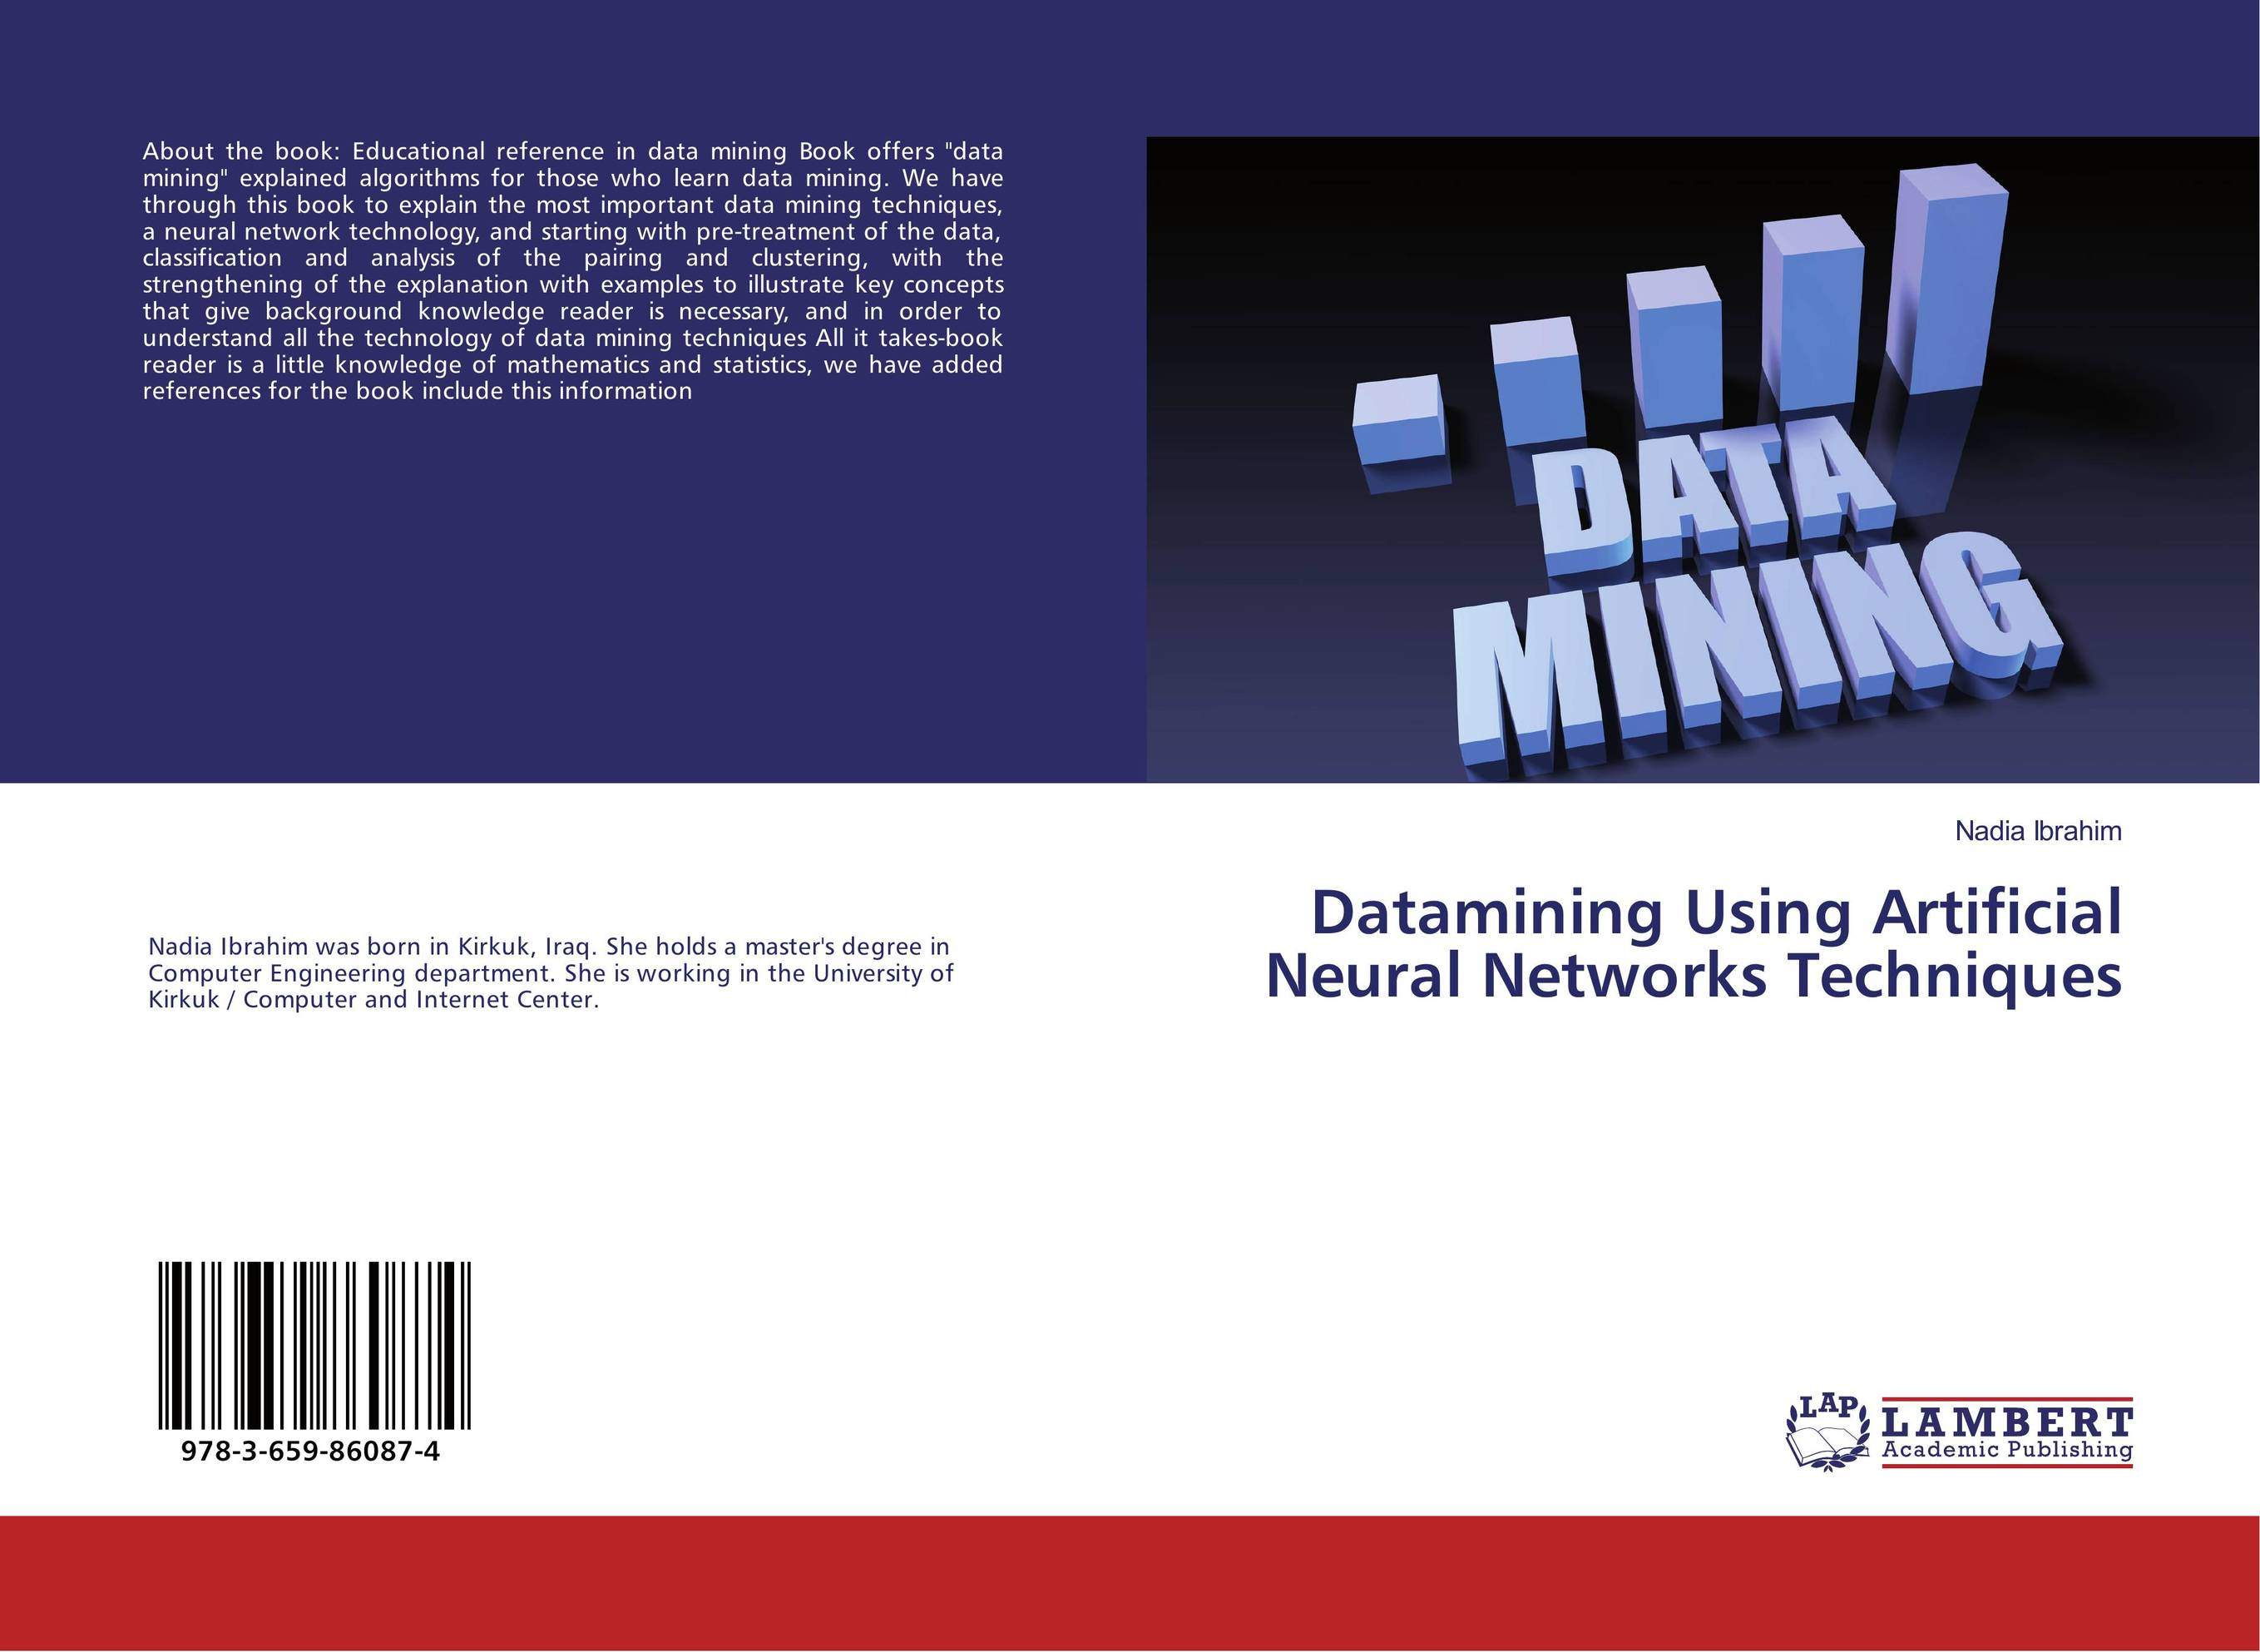 Datamining Using Artificial Neural Networks Techniques developing networks in obesity using text mining